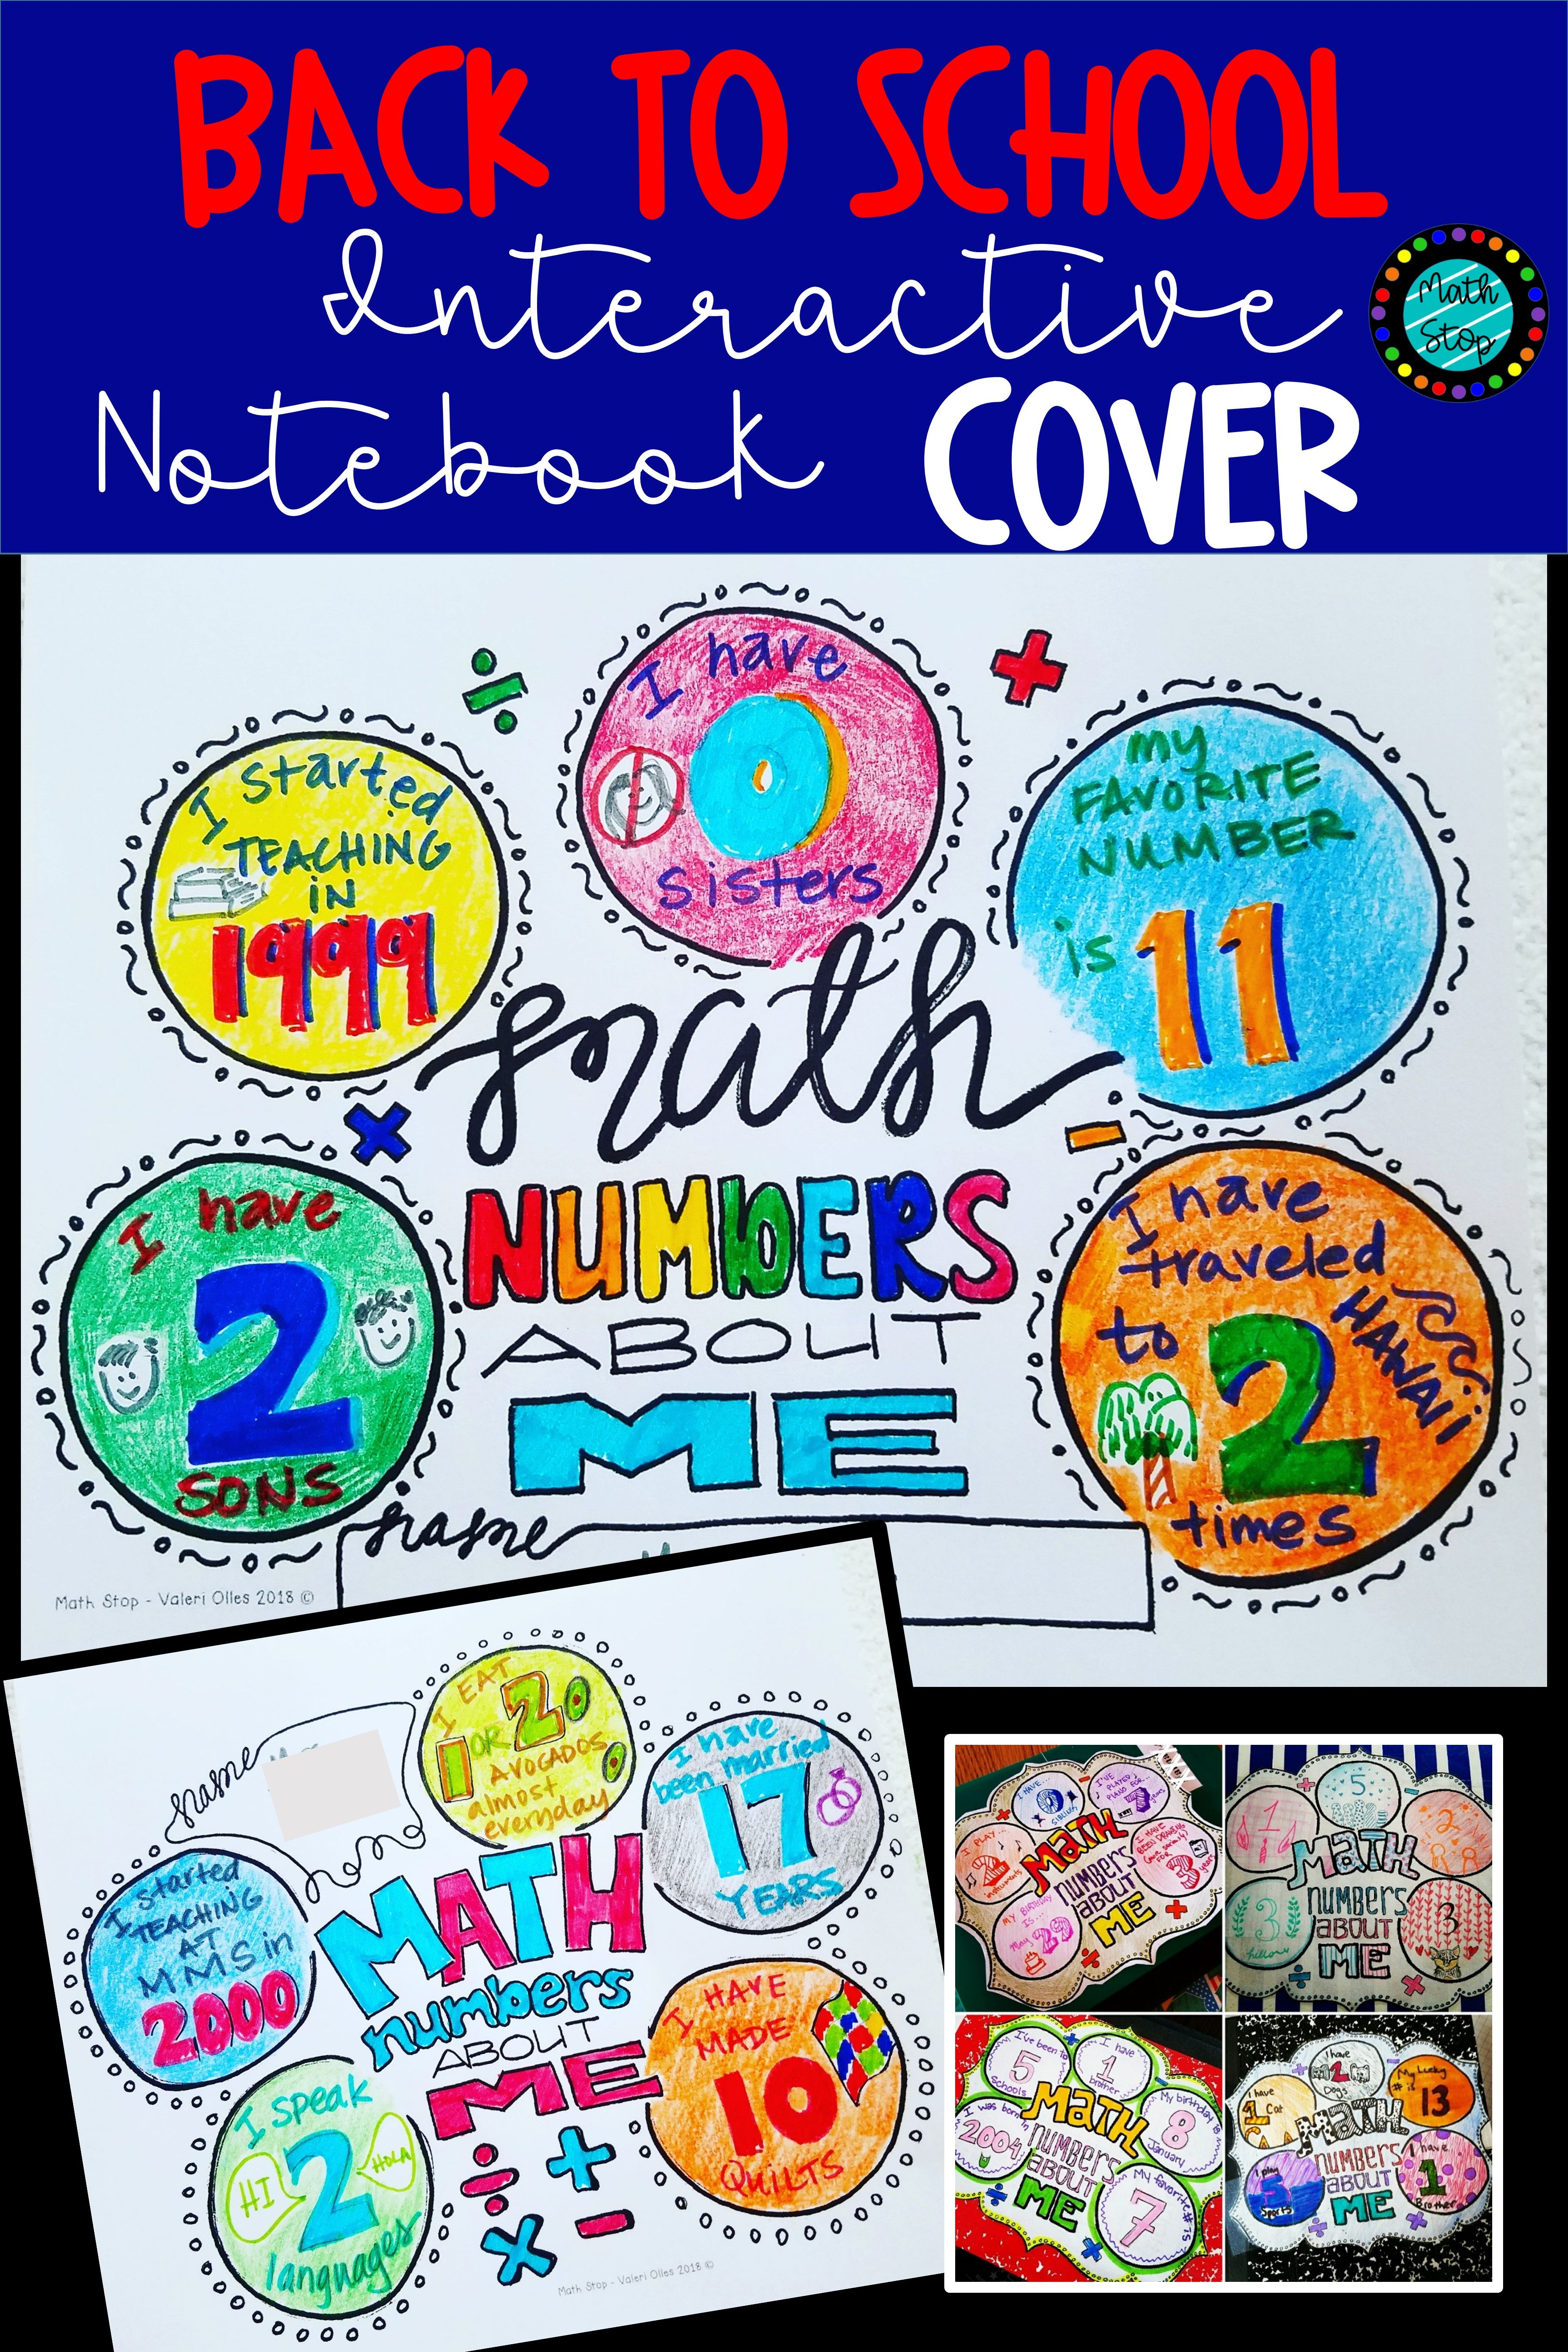 numbers about me cover page (4 designs) | back to school math ideas